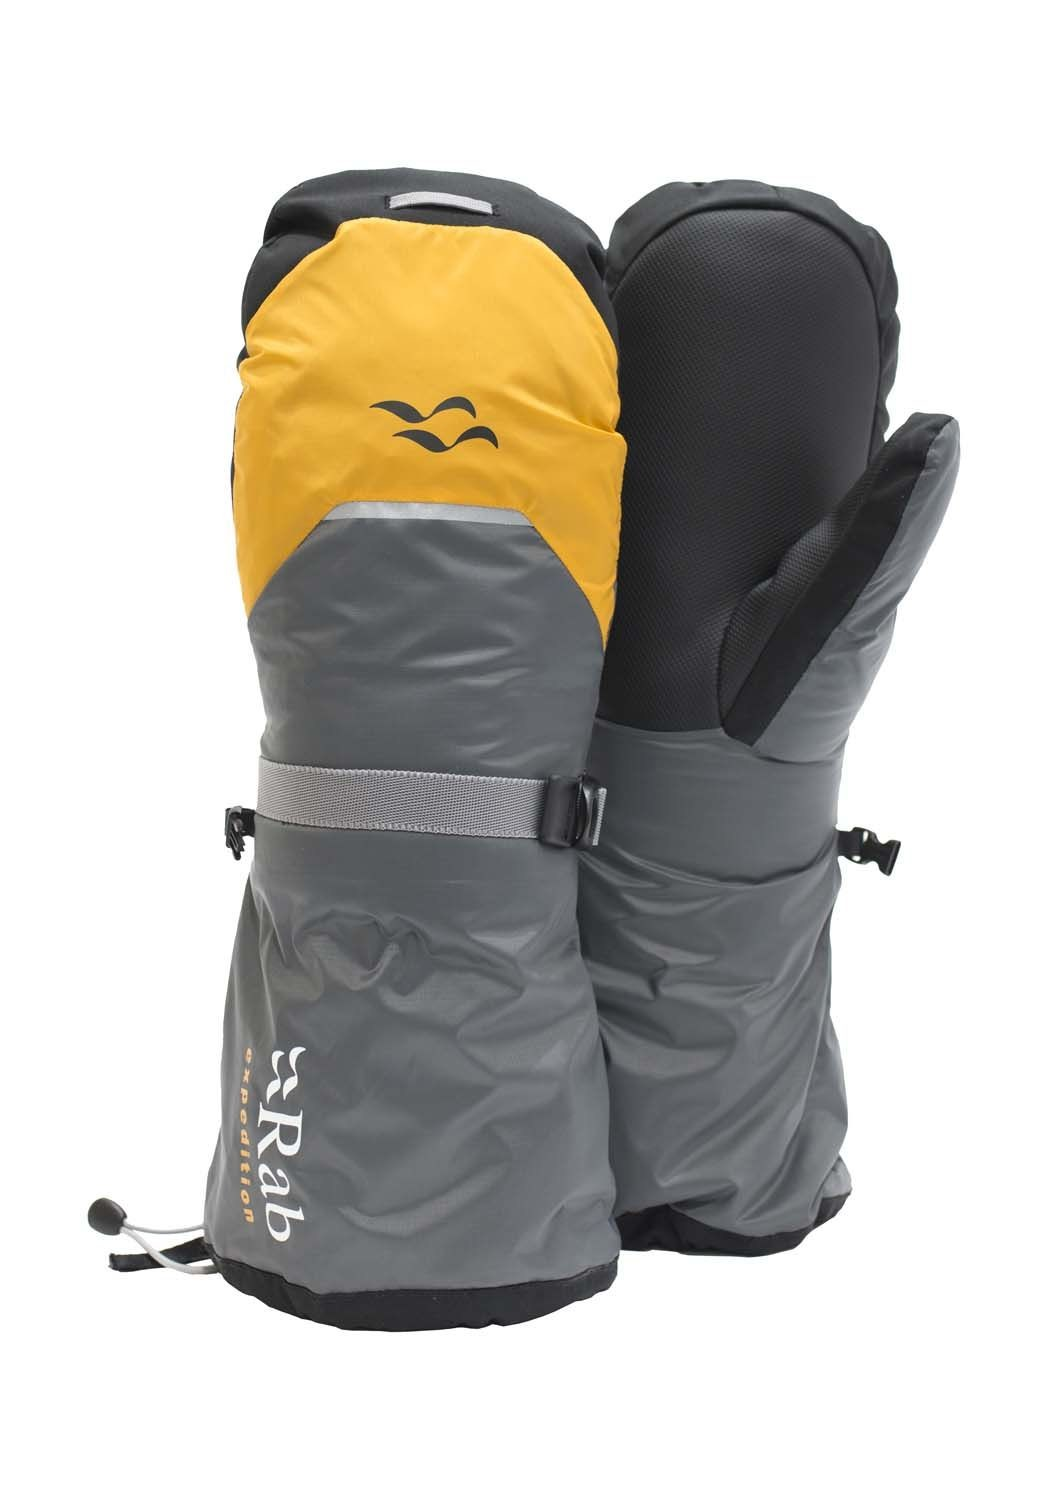 Rab Expedition 8000 Mitts, rellenos de pluma, con Polartec Gold en la palma